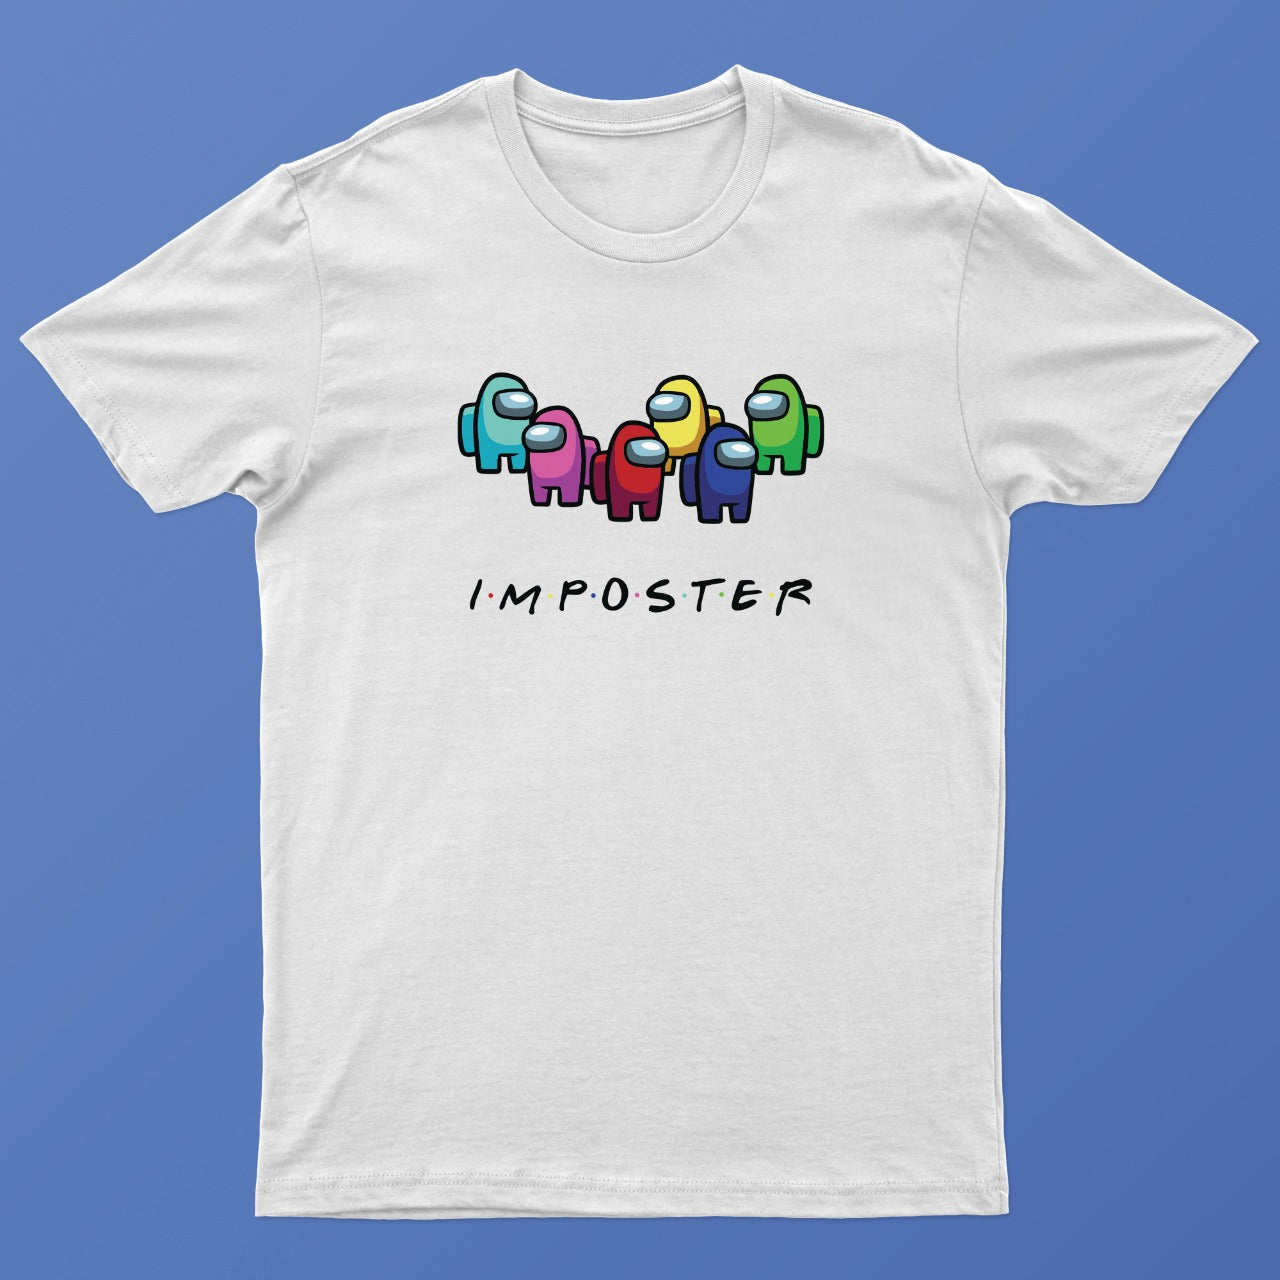 Imposter - Tee